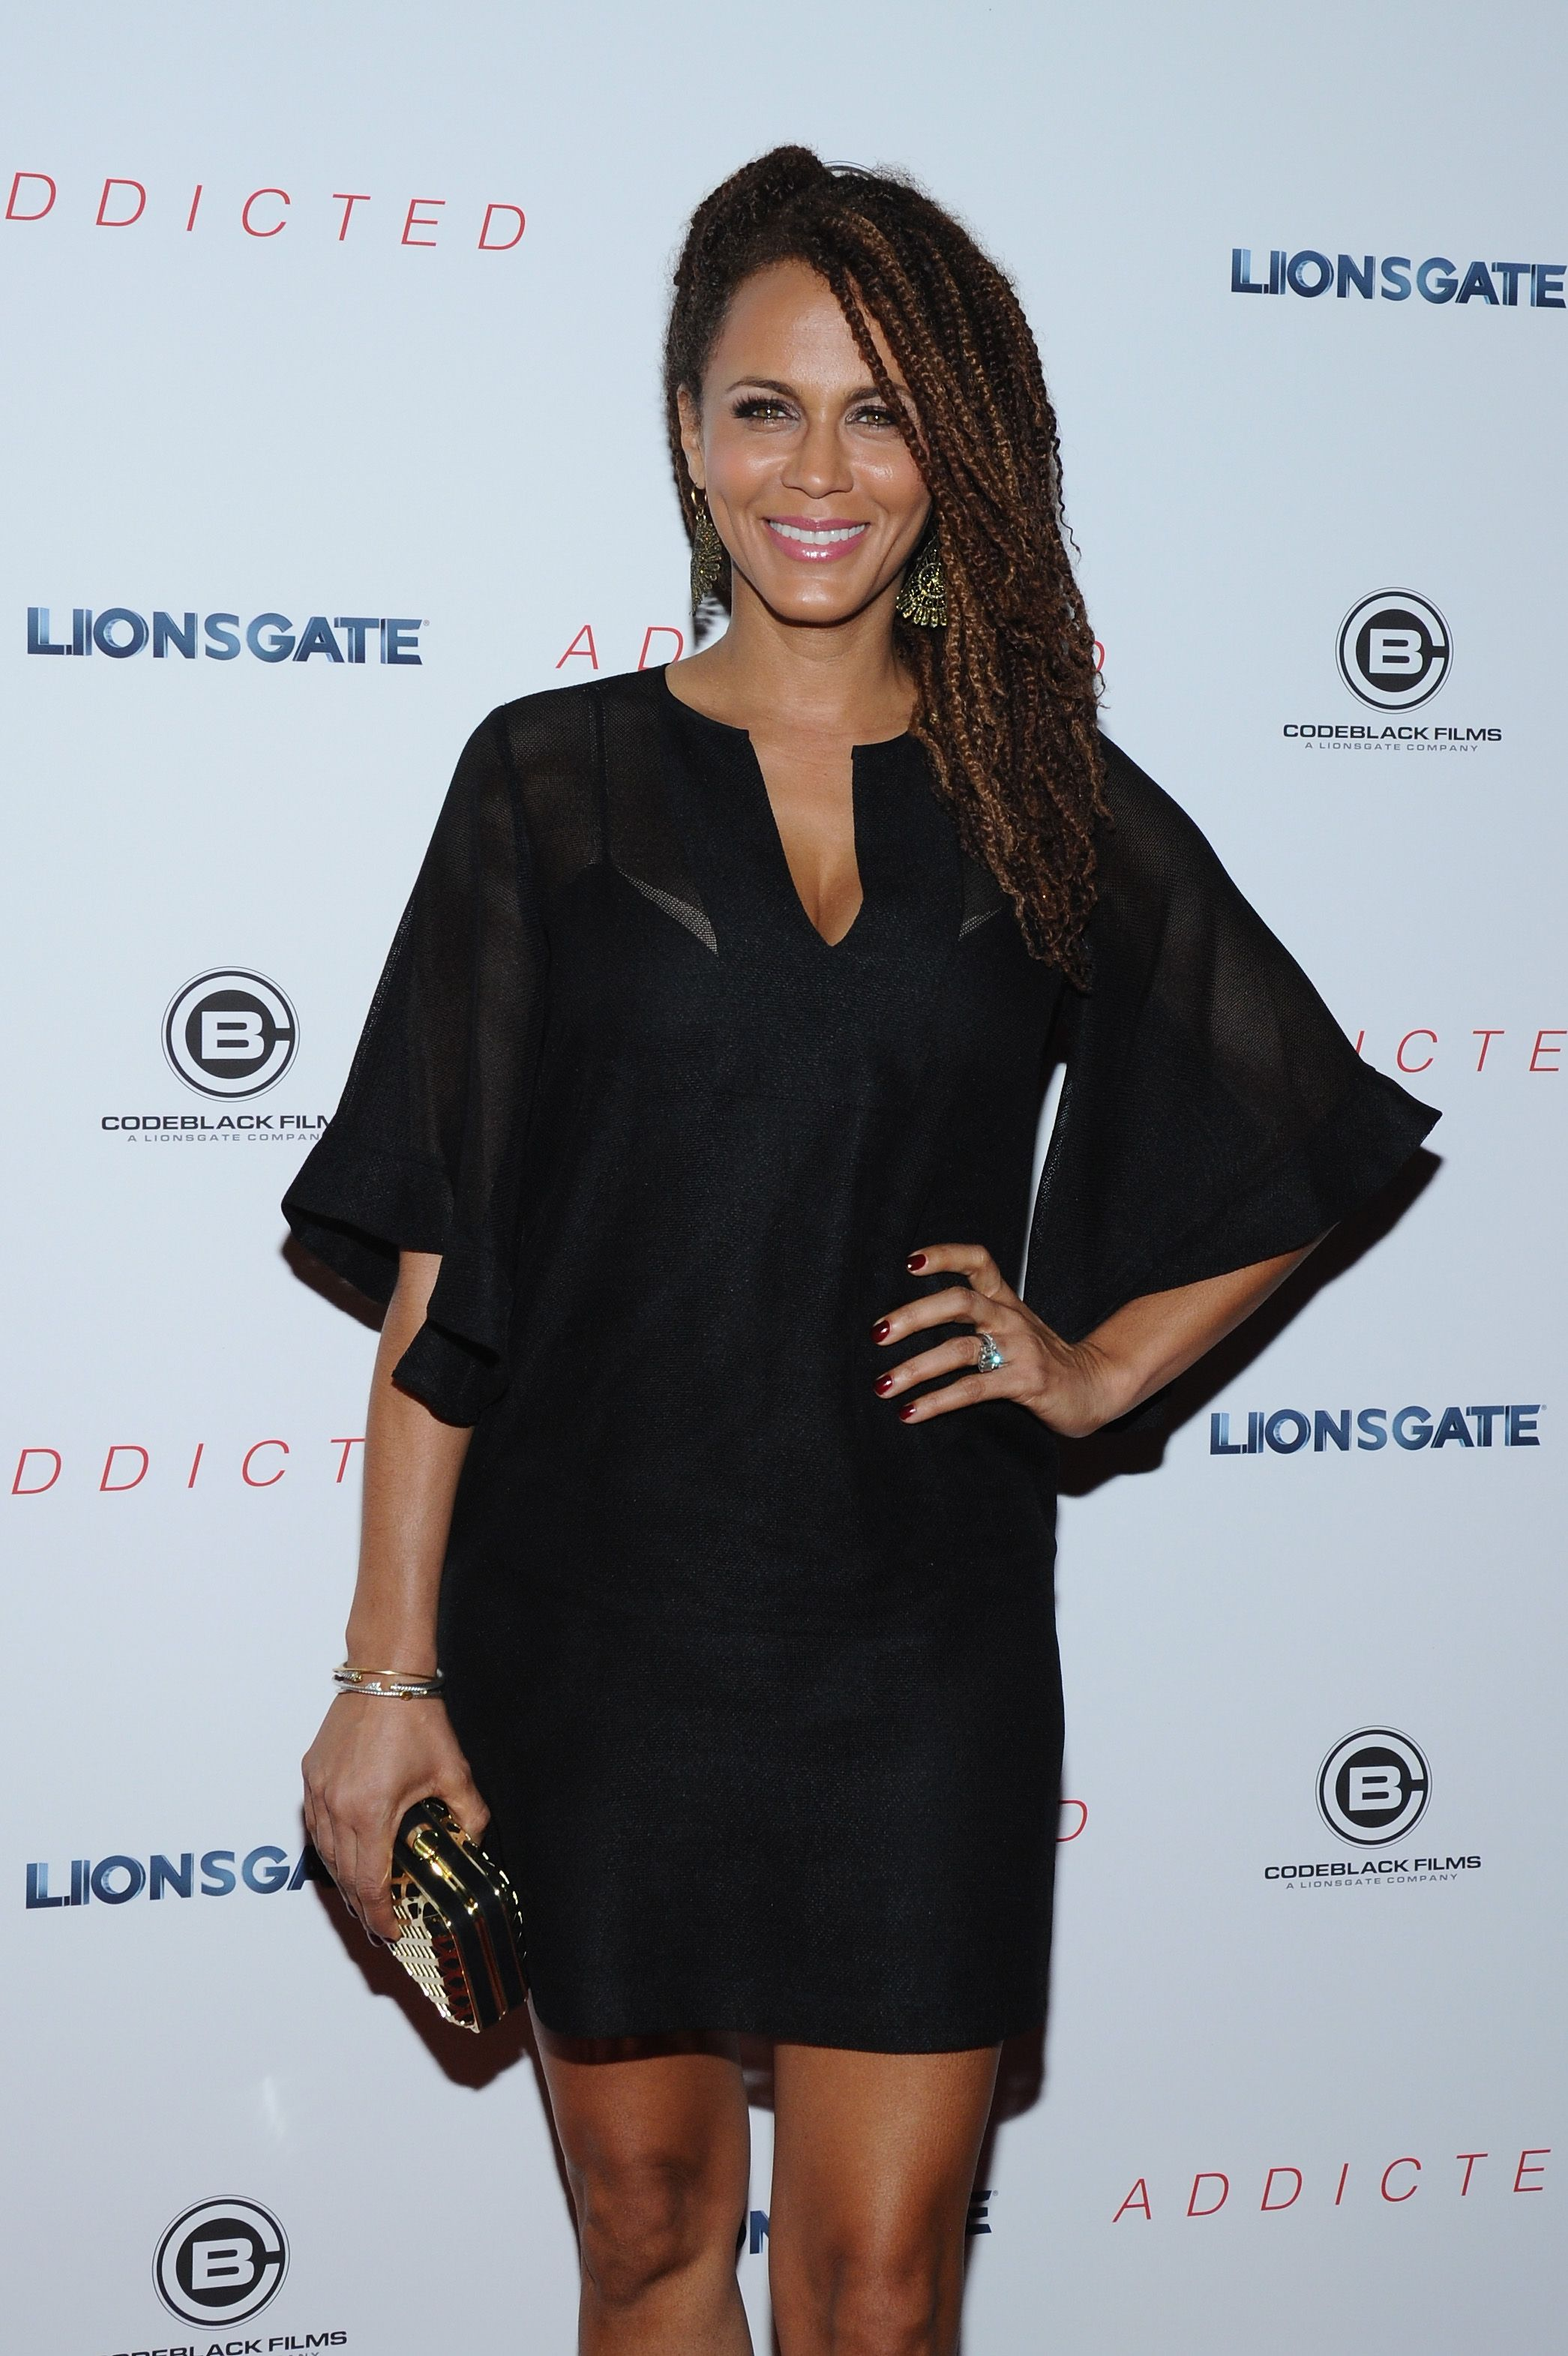 """Nicole Ari Parker during the New York Premiere of """"Addicted"""" at Regal Union Square on October 8, 2014 in New York City.   Source: Getty Images"""